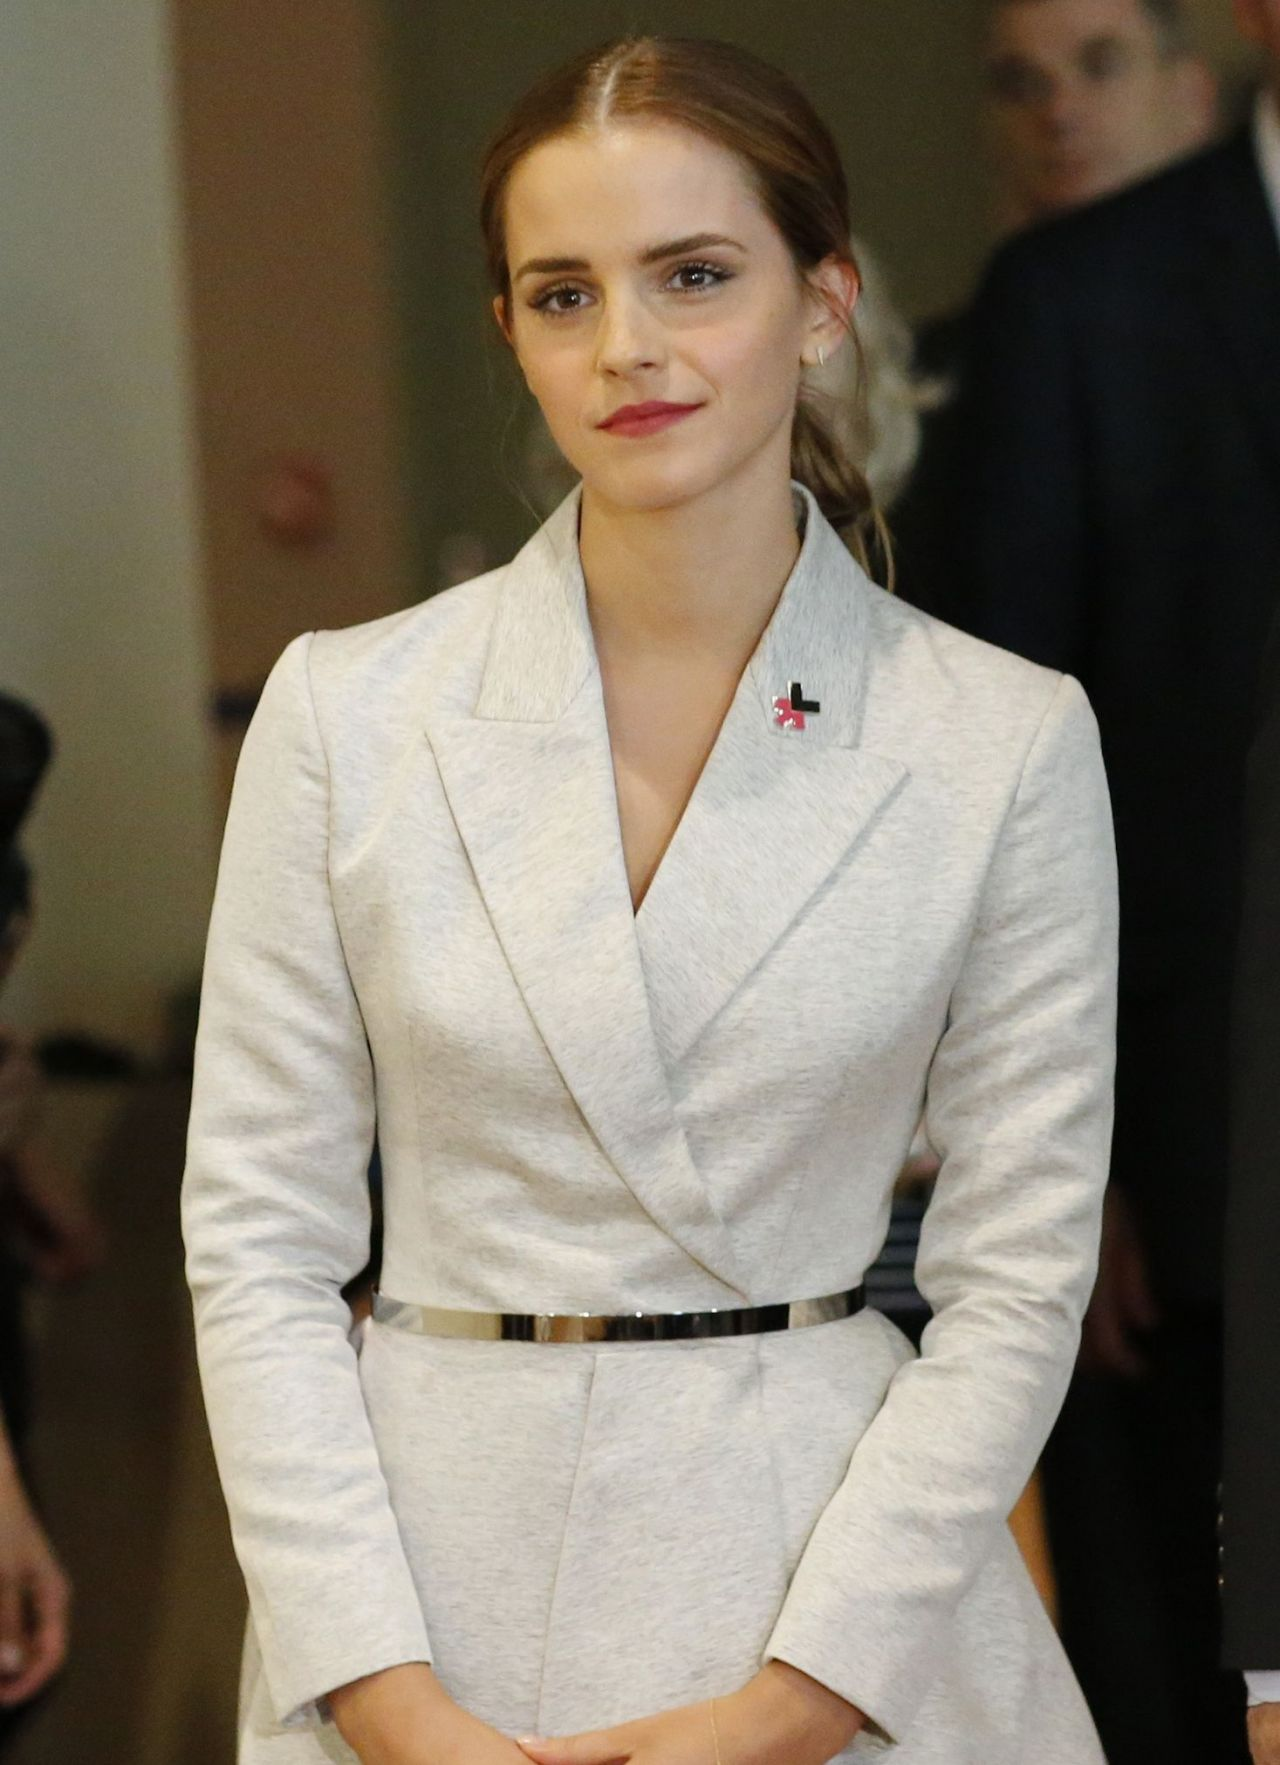 Emma Watson At The United Nations In New York City -9687